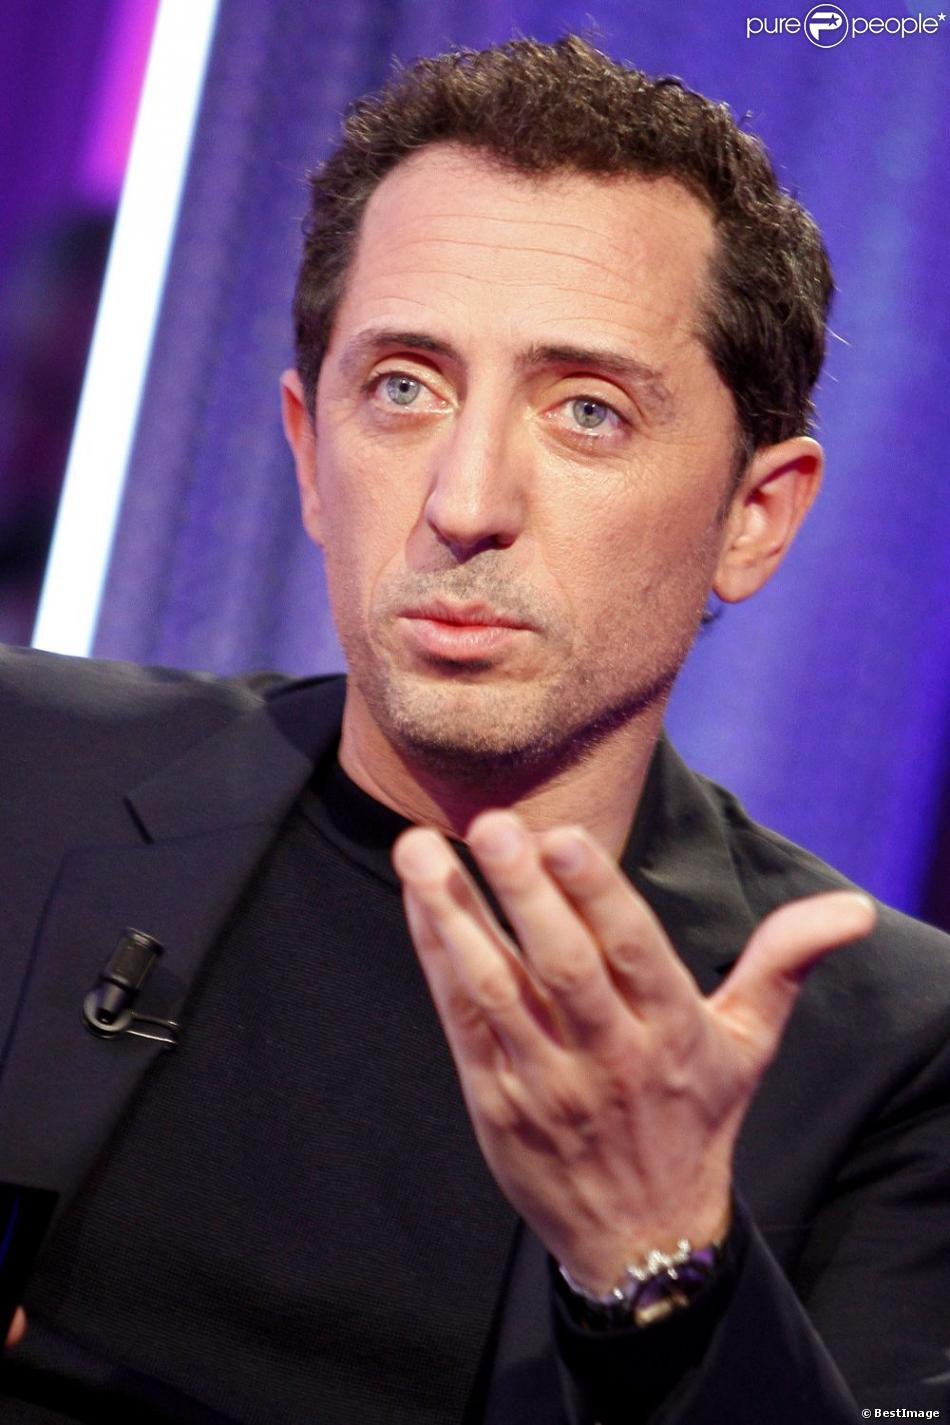 gad elmaleh en 2012. Black Bedroom Furniture Sets. Home Design Ideas